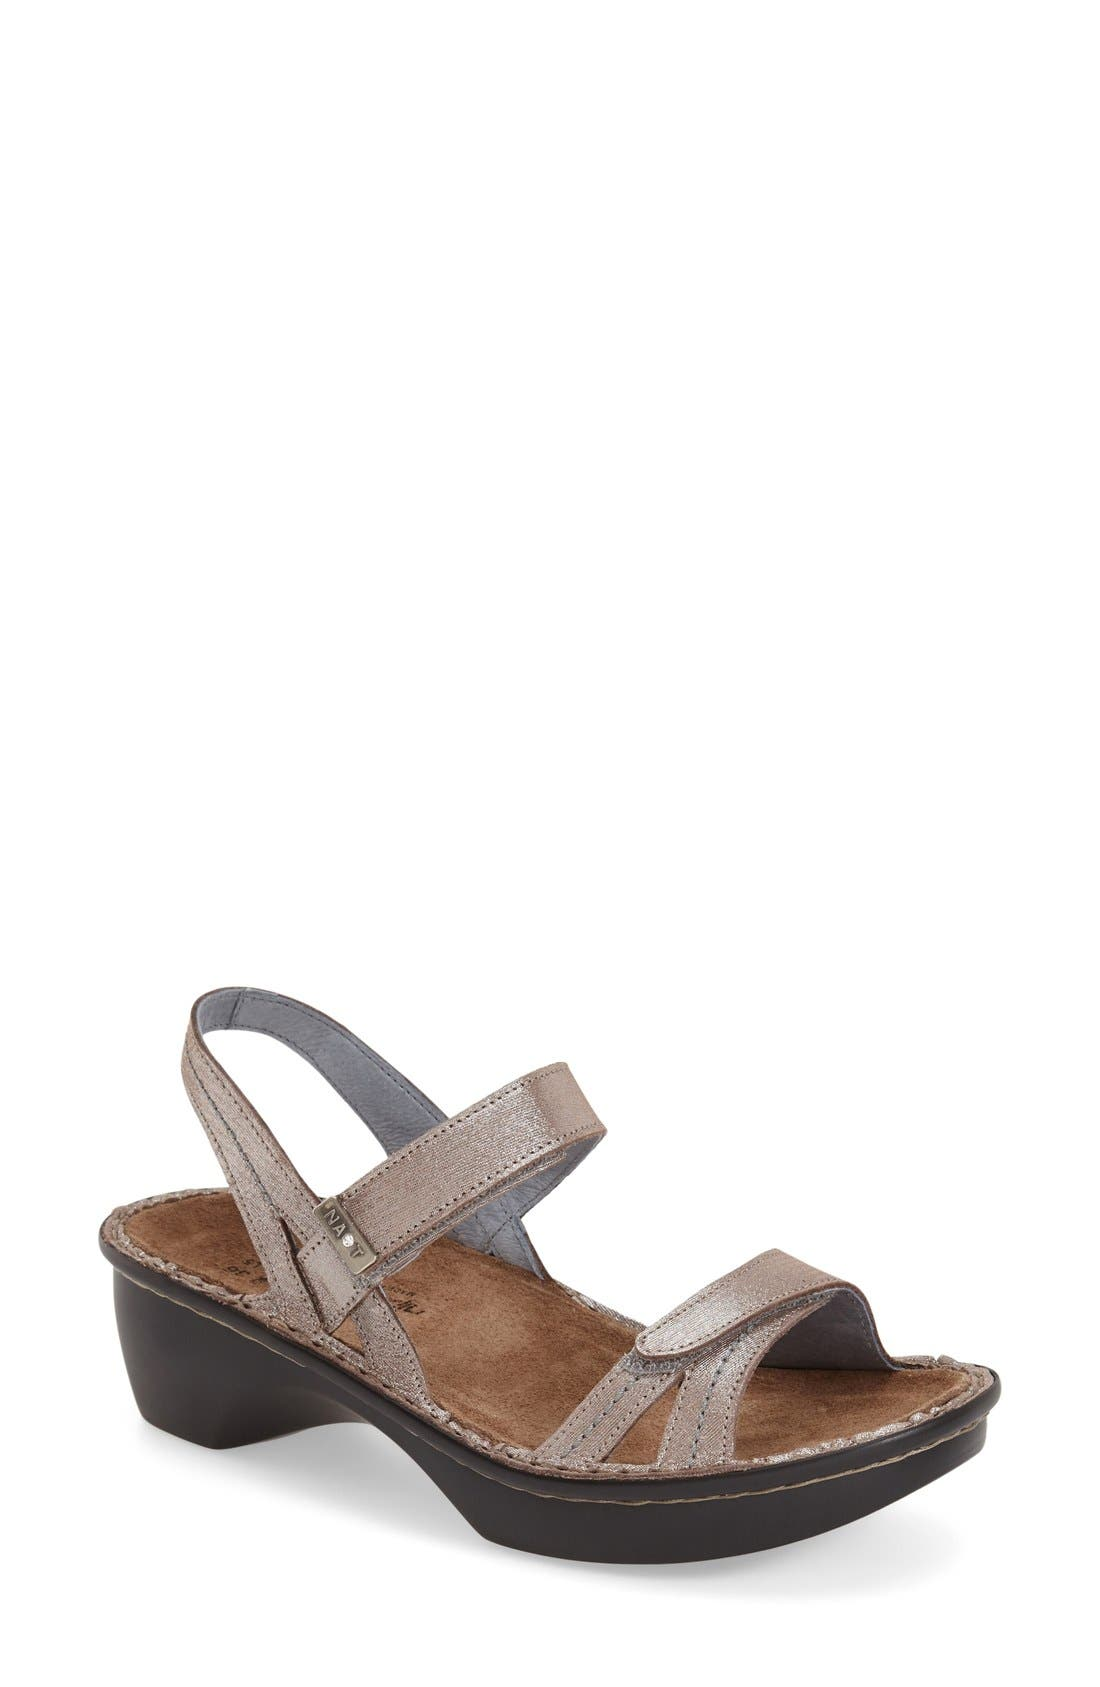 NAOT 'Brussels' Sandal